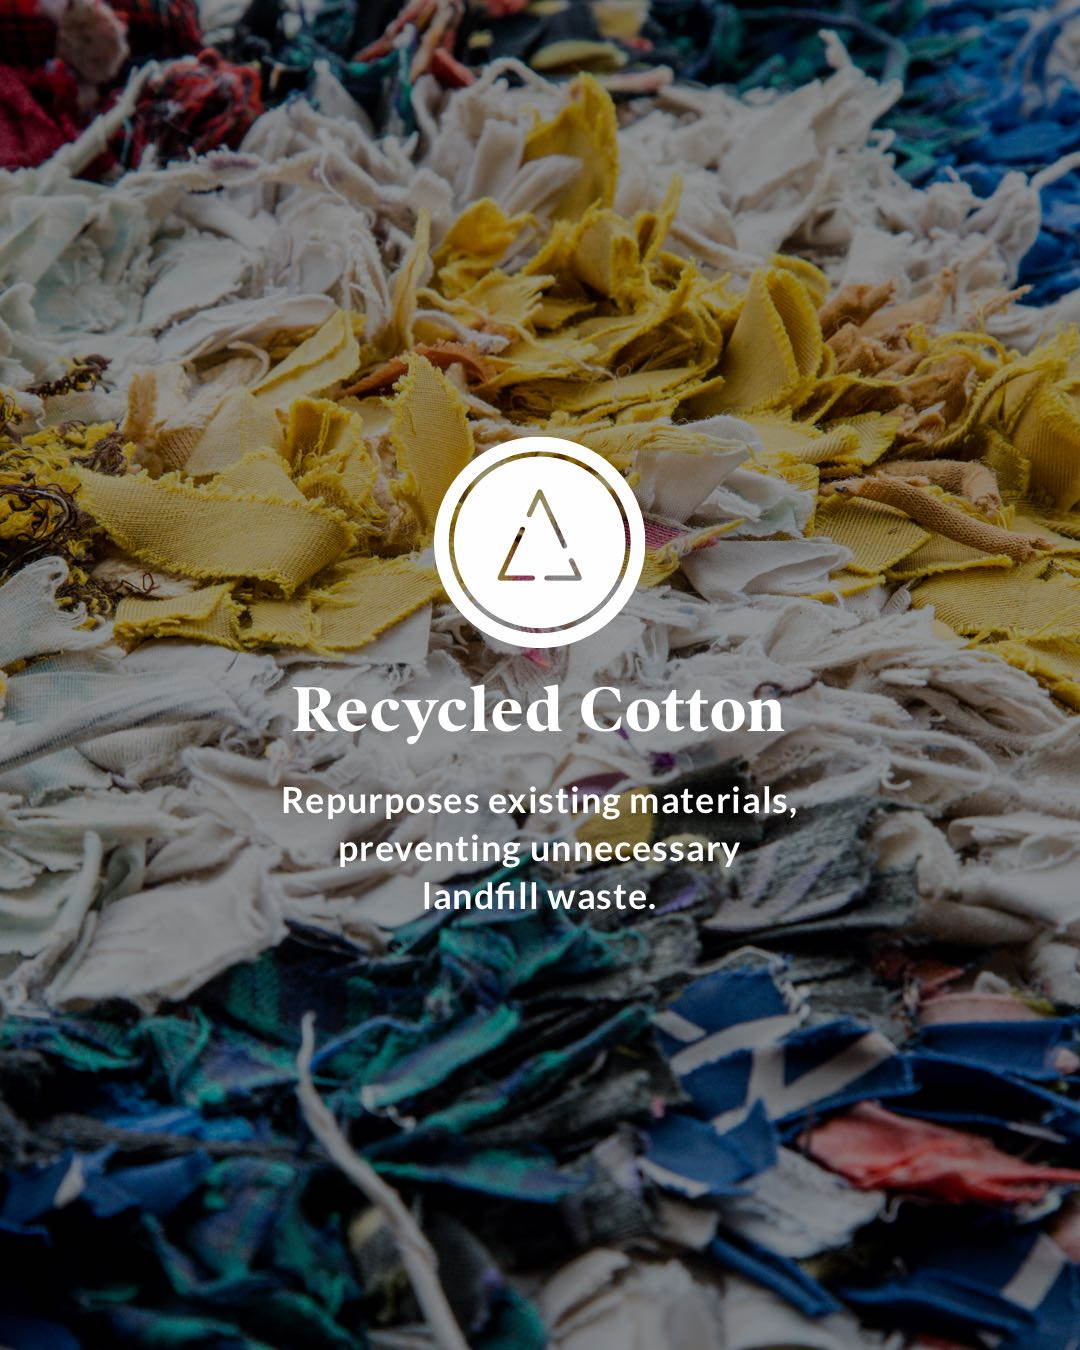 Recycled Cotton - Repurposes existing materials, preventing unnecessary landfill waste.